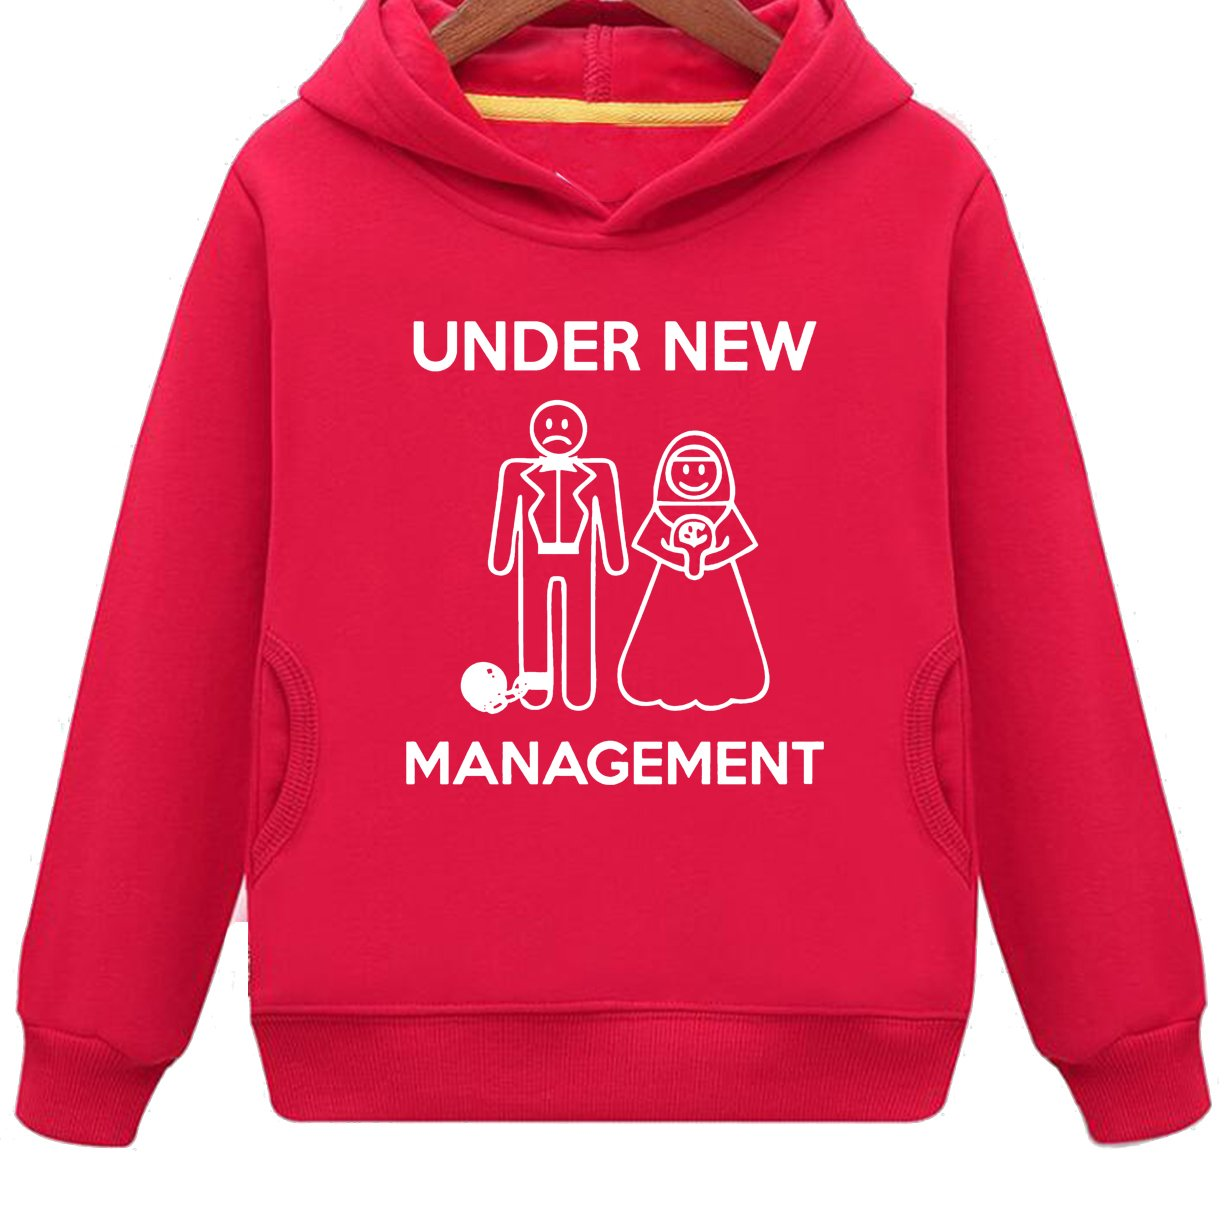 Mustang Kids Under New Management Funny Wedding Gift Hoodie with Side Pockets (R,M)